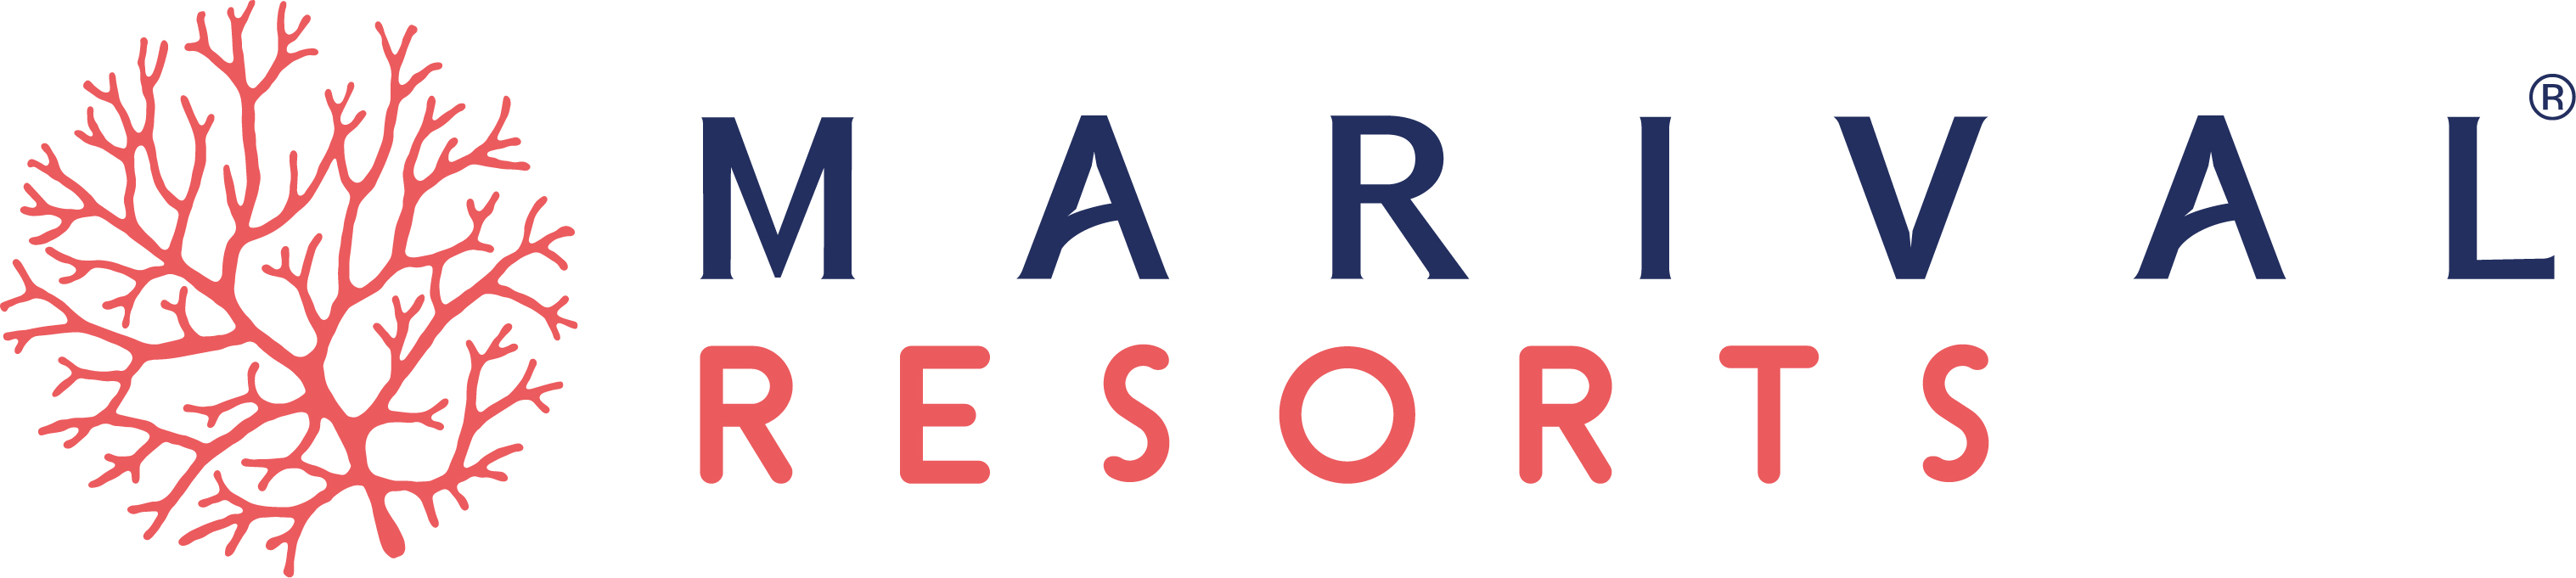 Marival Resorts logo